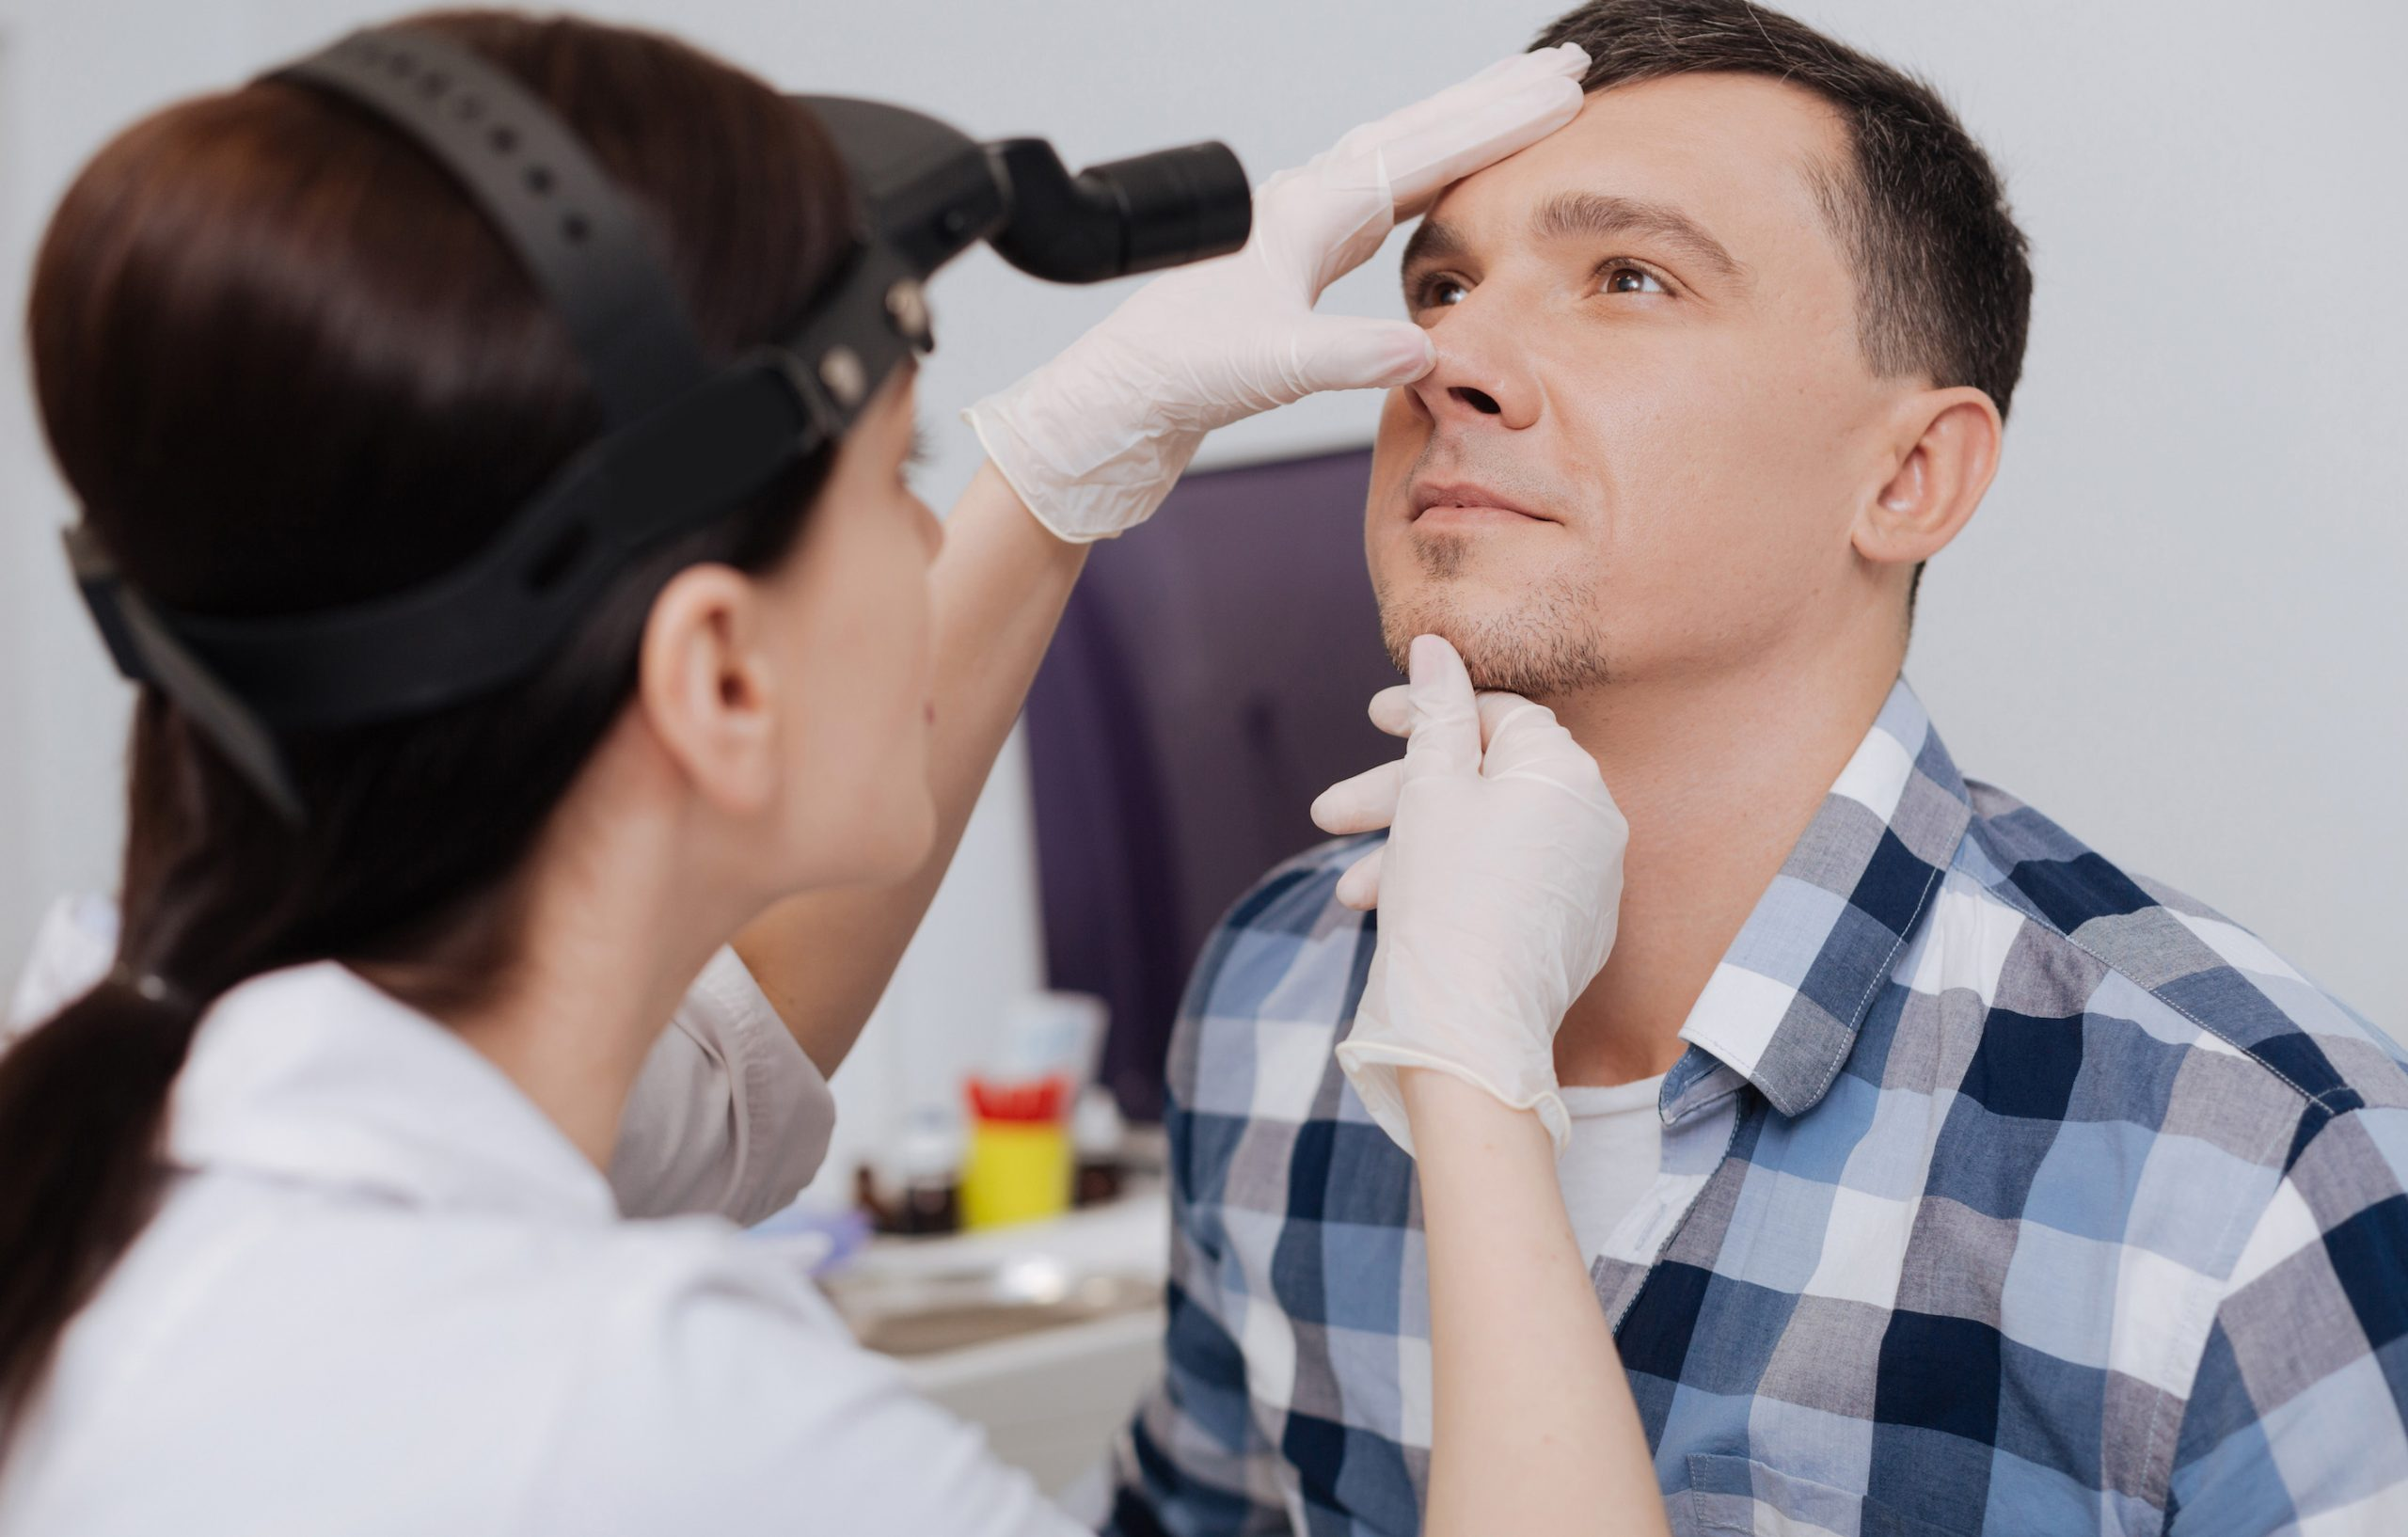 Doctor looking at nose of her visitor